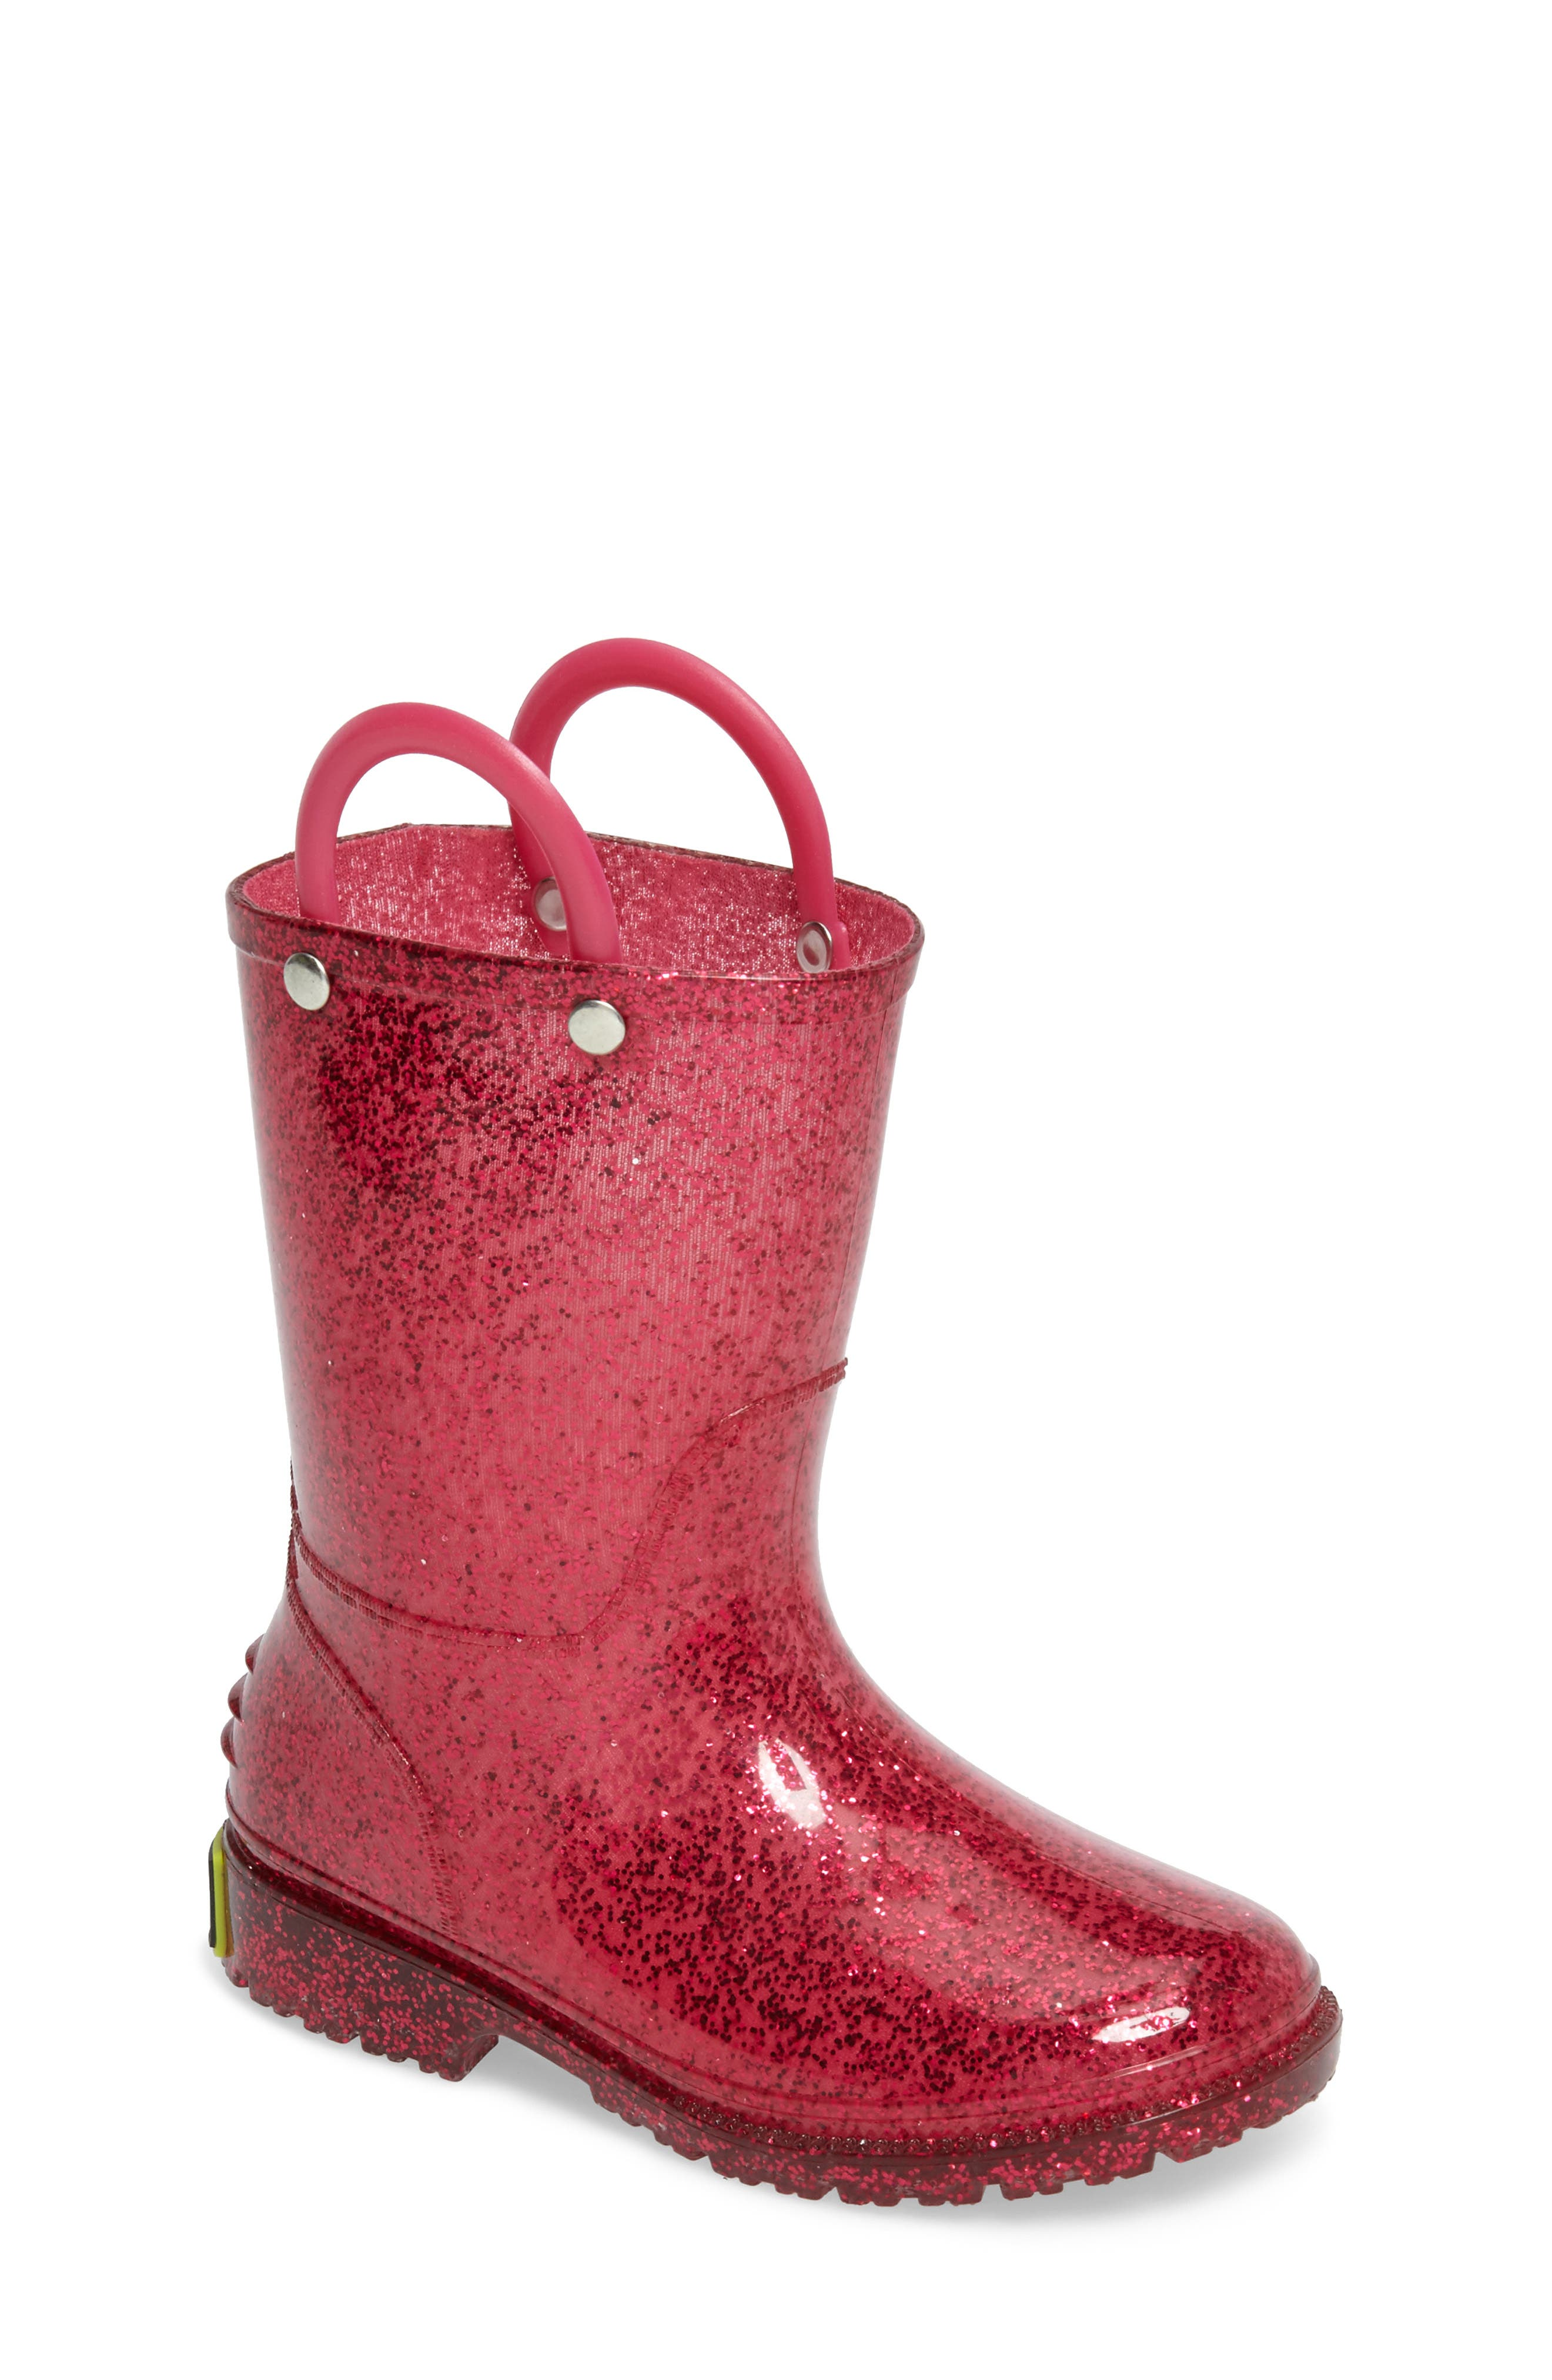 Main Image - Western Chief Glitter Rain Boot (Walker, Toddler & Little Kid)